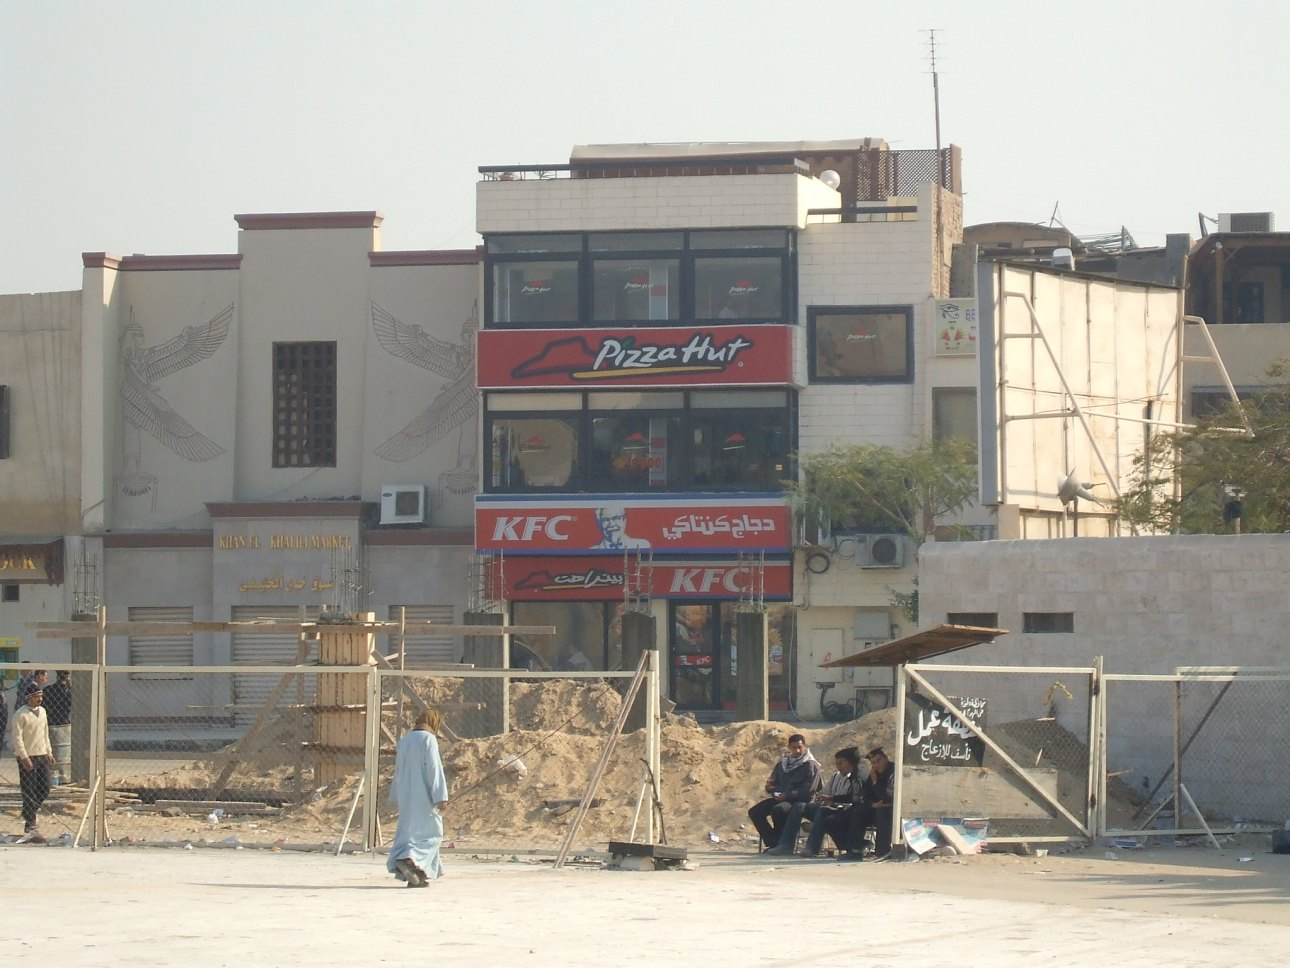 Pizza Hut and KFC by the Great Pyramid, Cairo